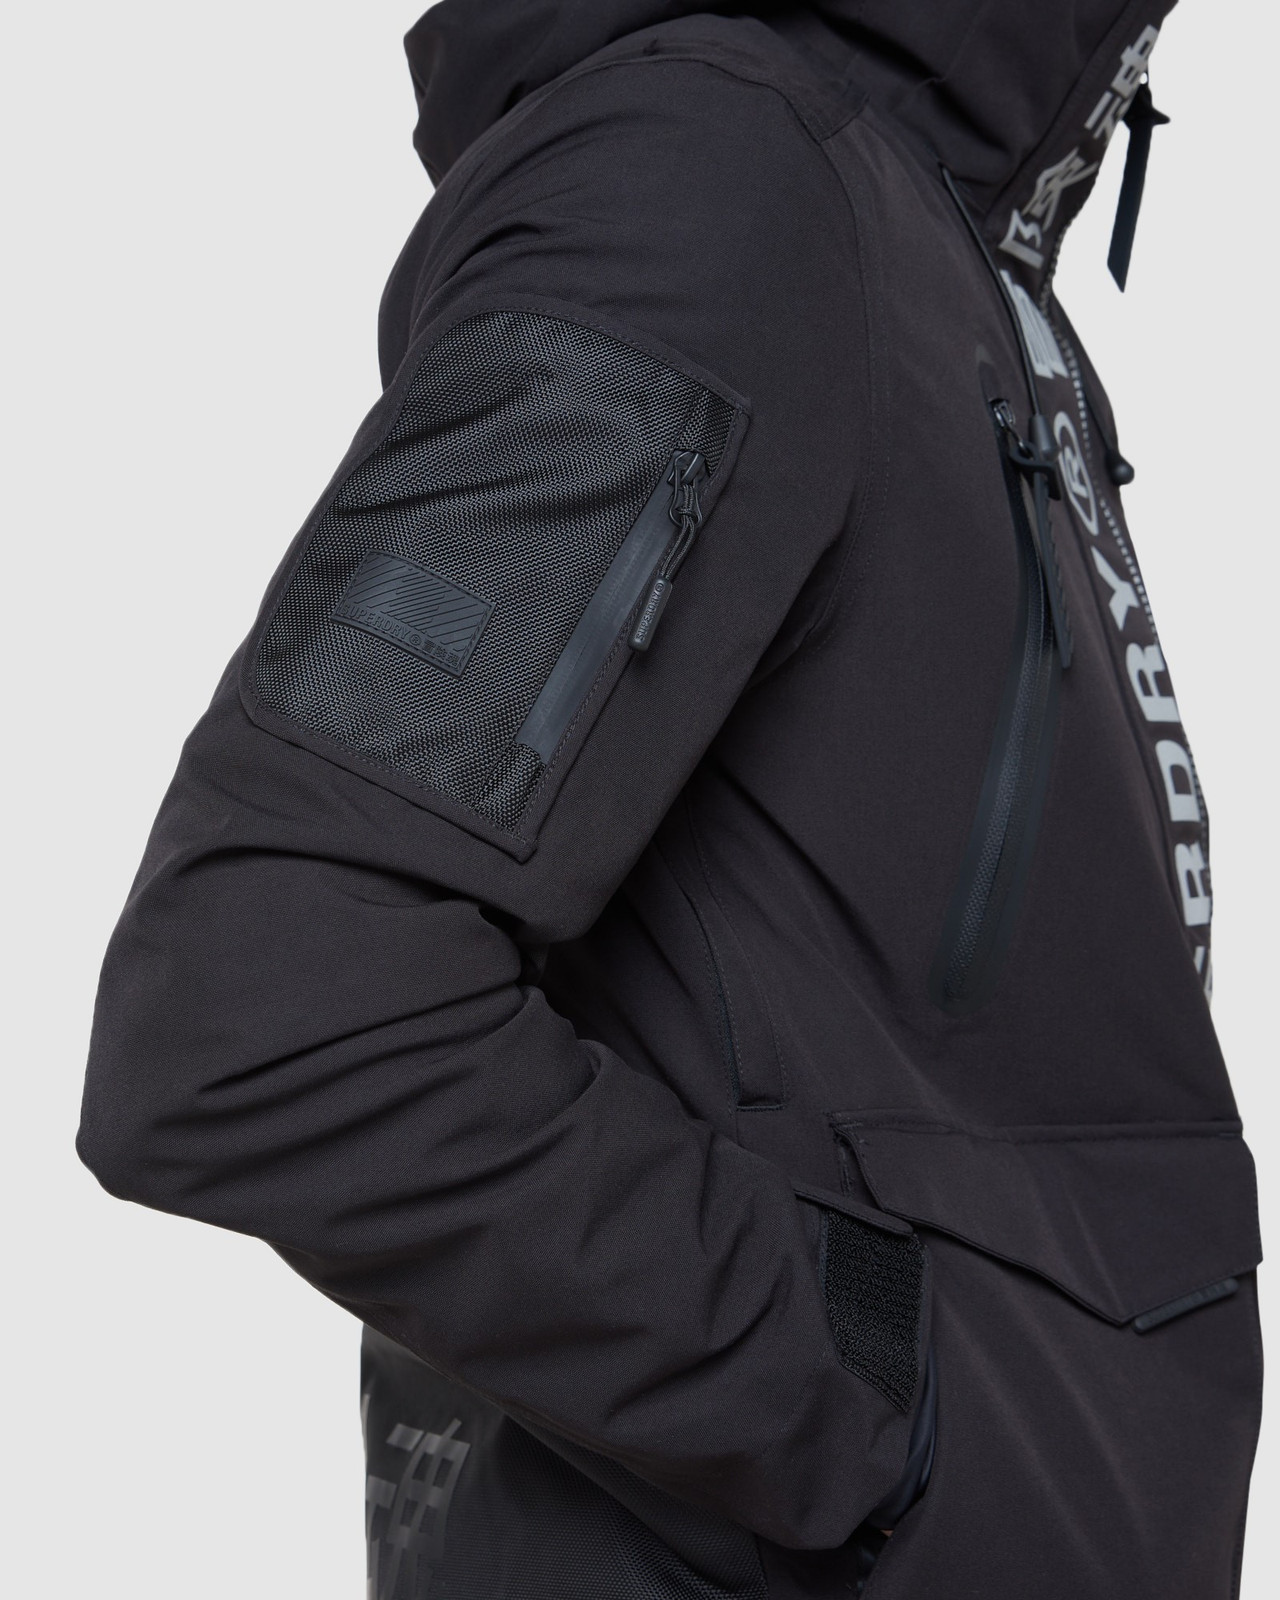 Superdry Mens ULTIMATE MOUNTAIN RESCUE JKT Black Snow Jackets 8